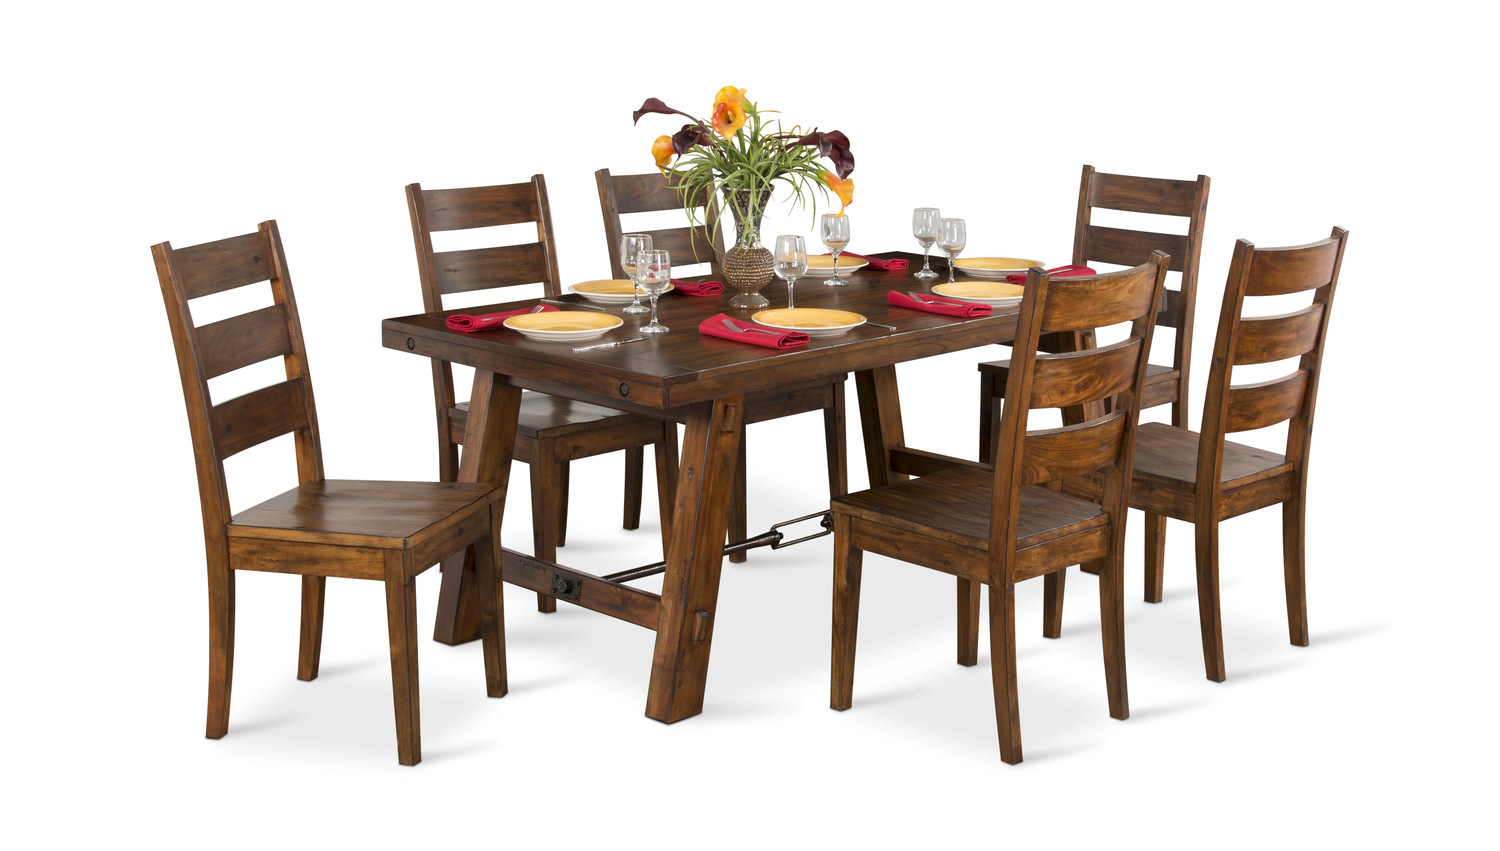 Mahogany Tuscany Table With 4 Side Chairs Hom Furniture